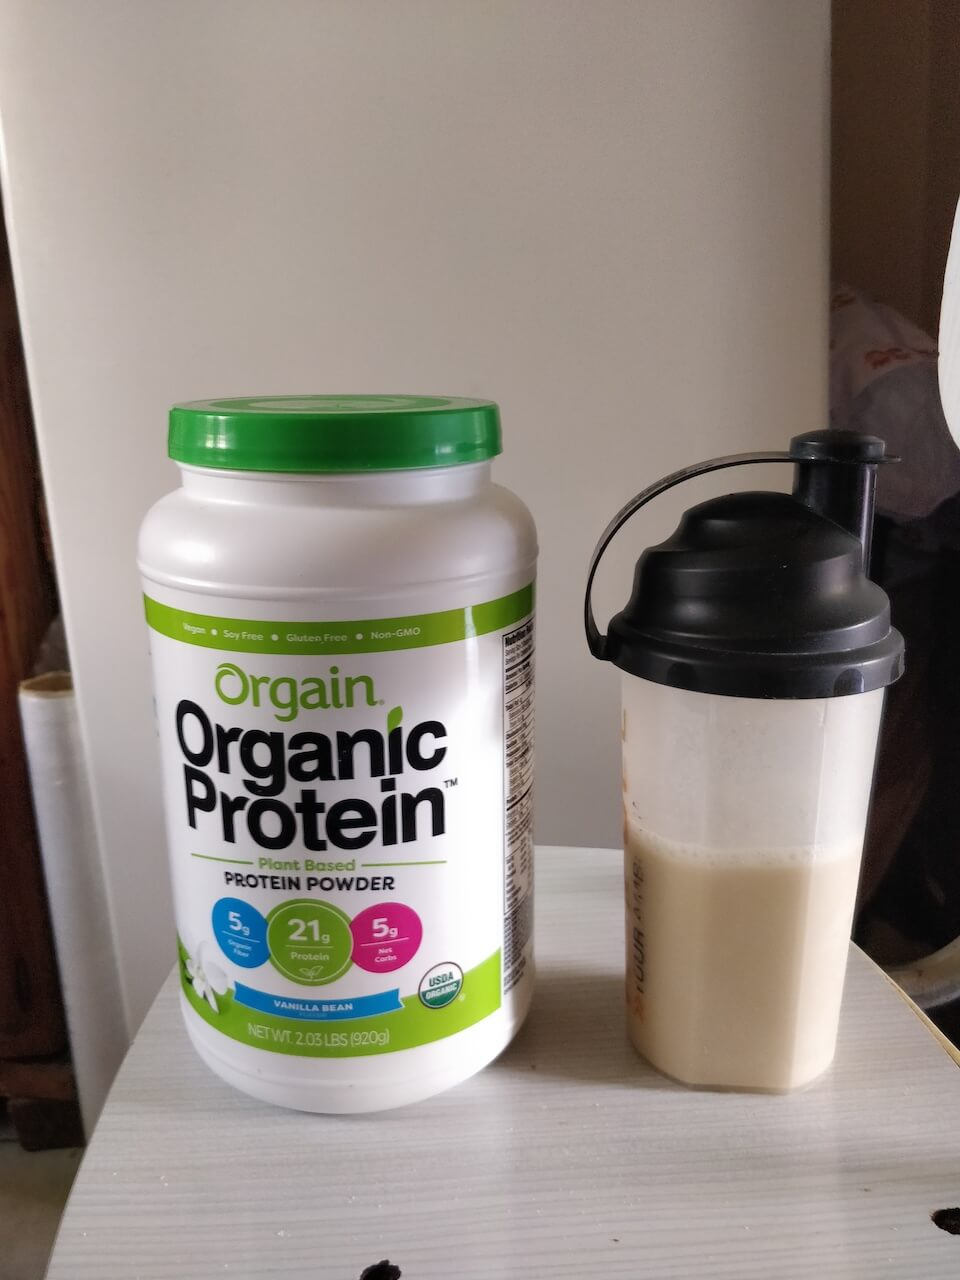 Orgain Organic Protein Powder Tastiness, Mixability, and Price